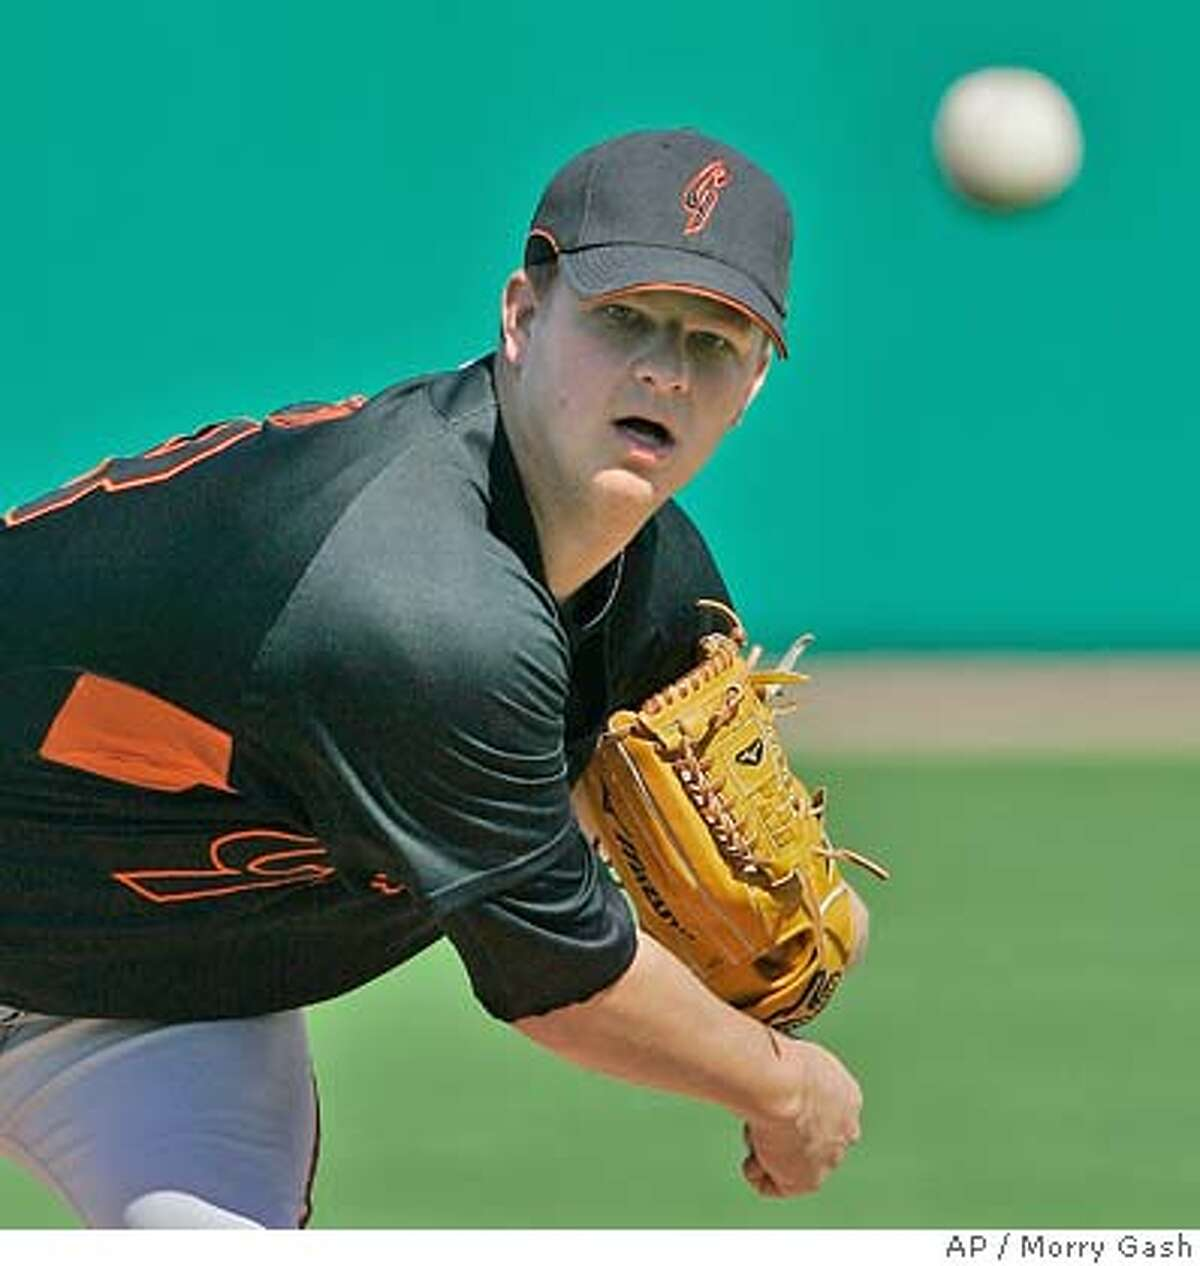 San Francisco Giants pitcher Matt Cain throws before the first inning at a baseball spring training game against the Chicago Cubs Sunday, March 2, 2008, in Mesa, Ariz. (AP Photo/Morry Gash)